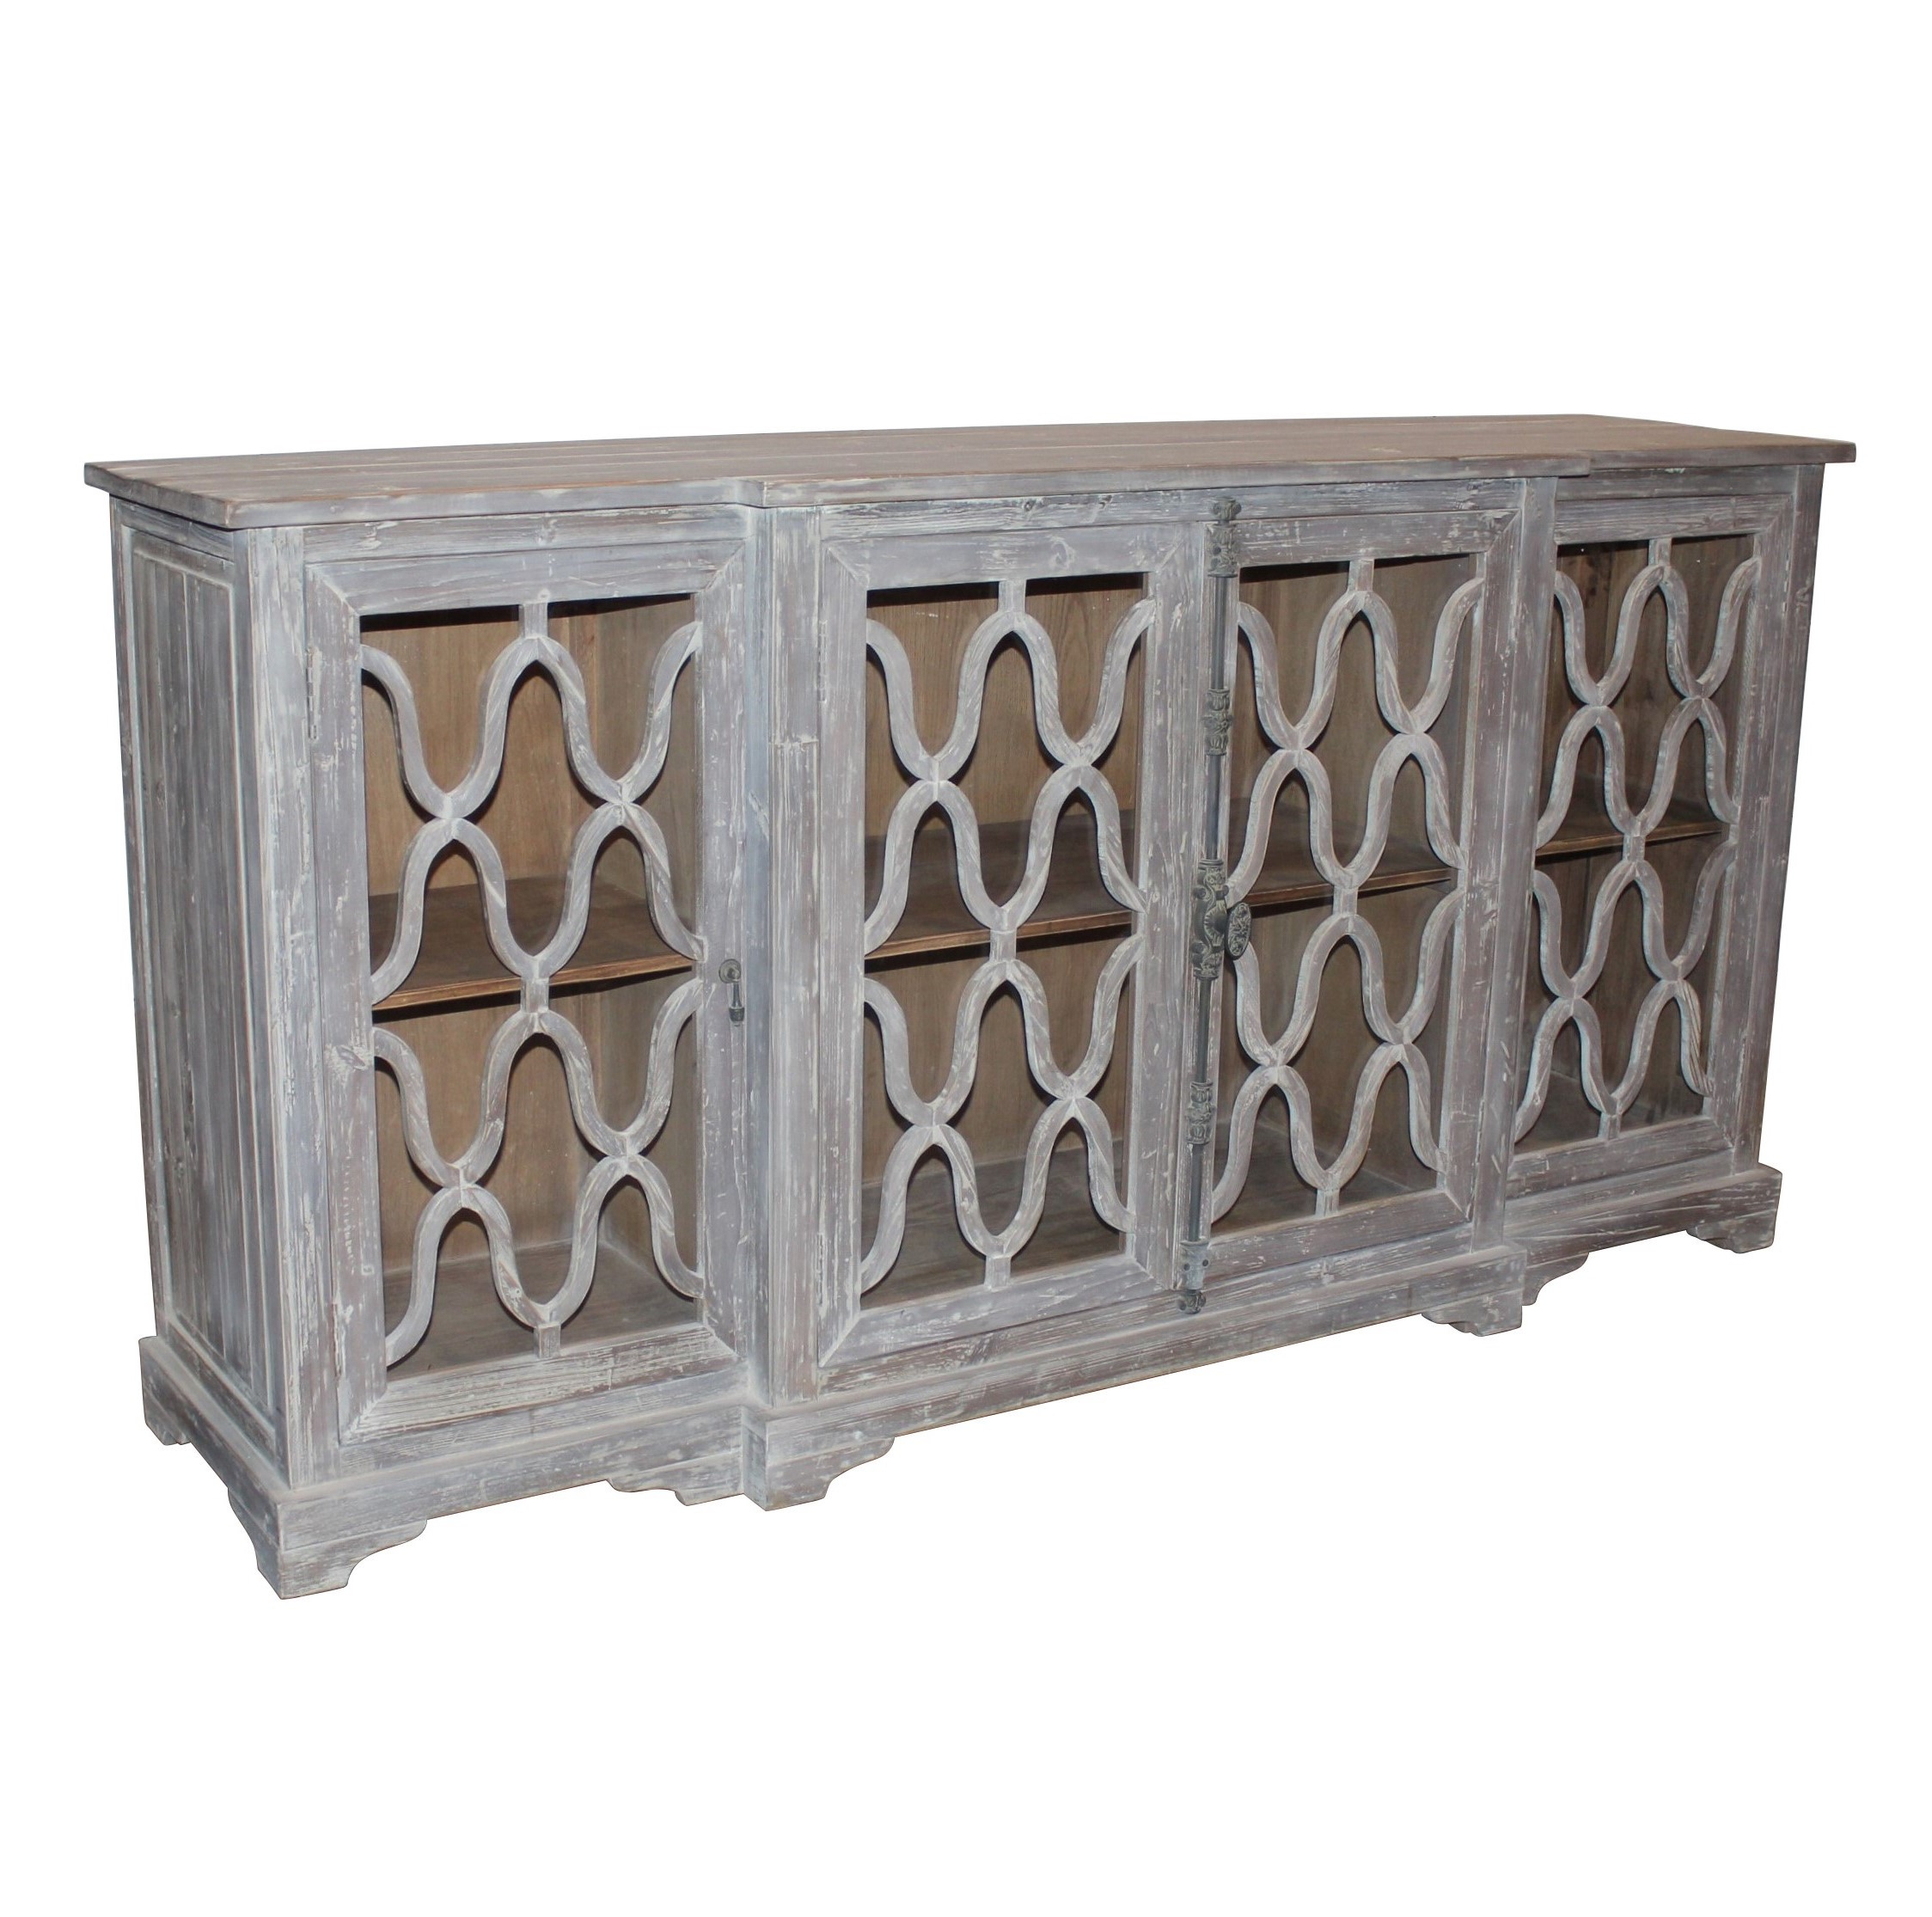 Trendy Reclaimed Pine & Iron 4 Door Sideboards With Regard To Quincy Sideboard – White X White – Antique And Fine Decor For The Home (View 5 of 20)